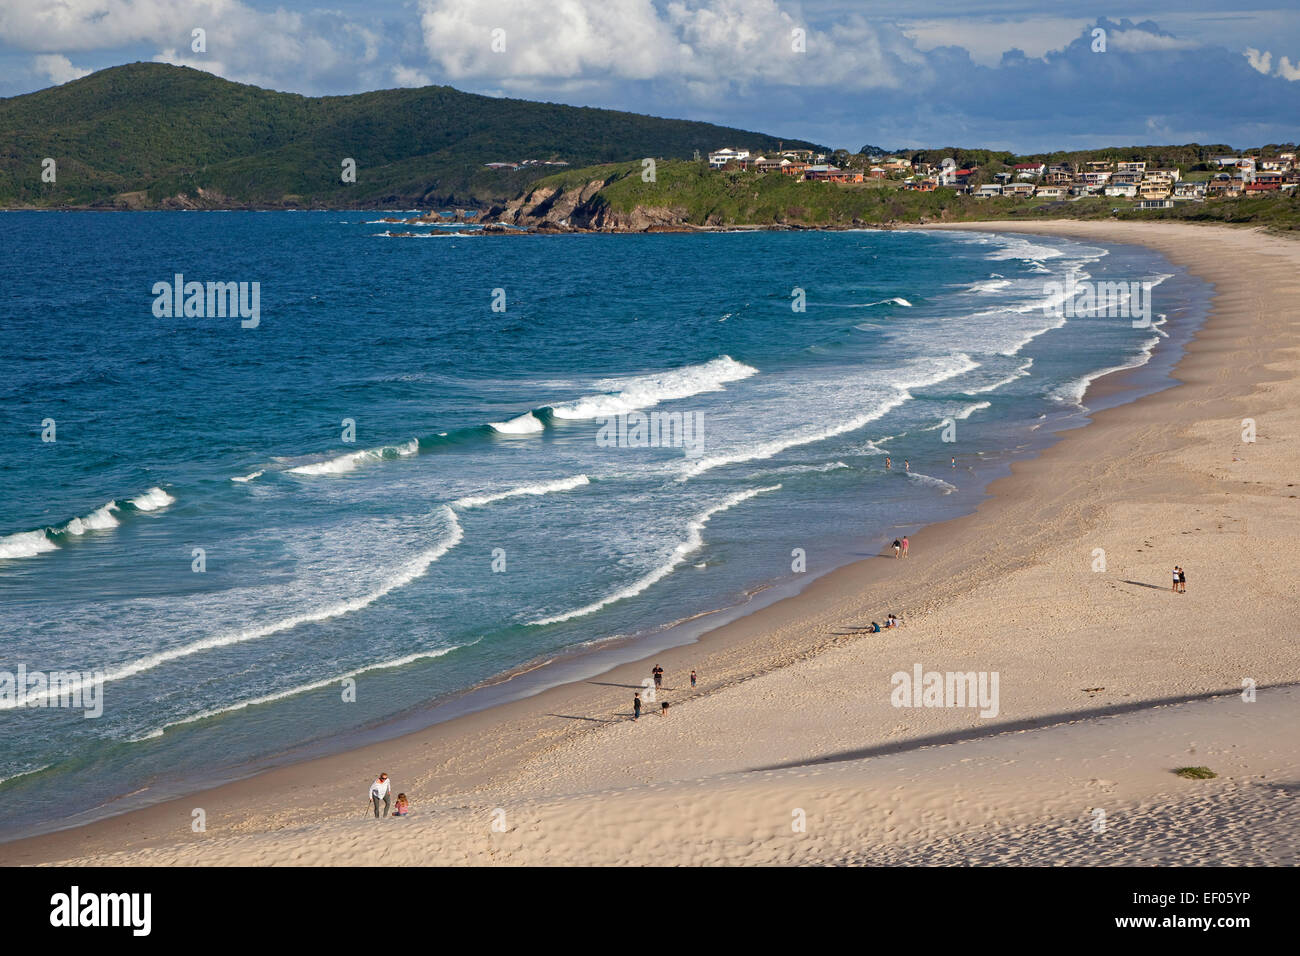 Tourists walking along One Mile Beach at Forster along the  Tasman Sea, New South Wales, Australia - Stock Image